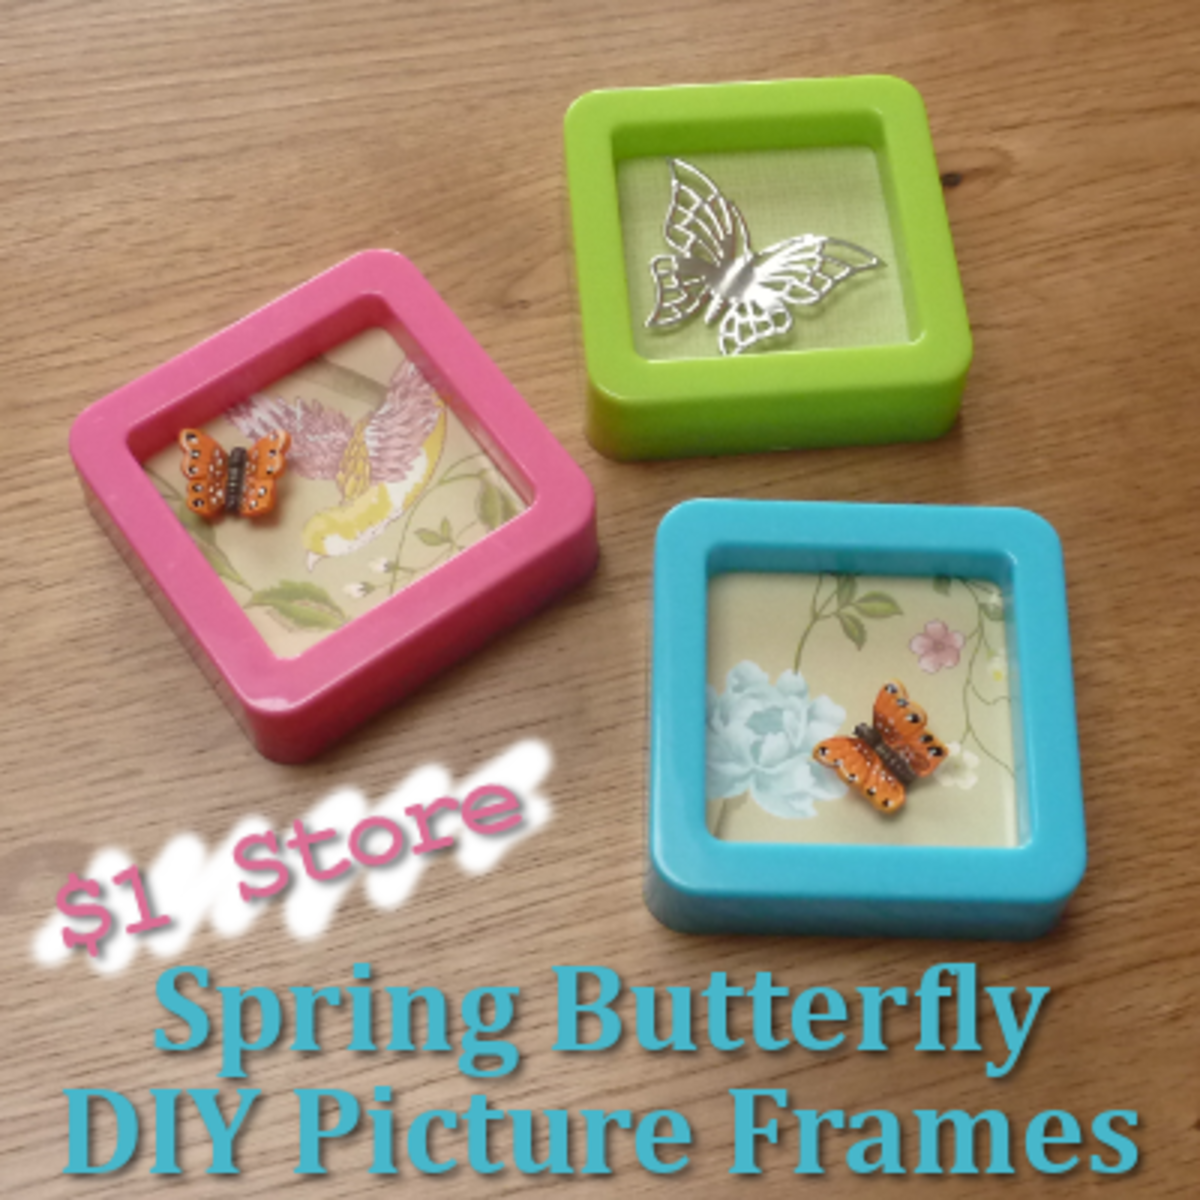 Bright and Fun $1 Butterfly Picture Frames